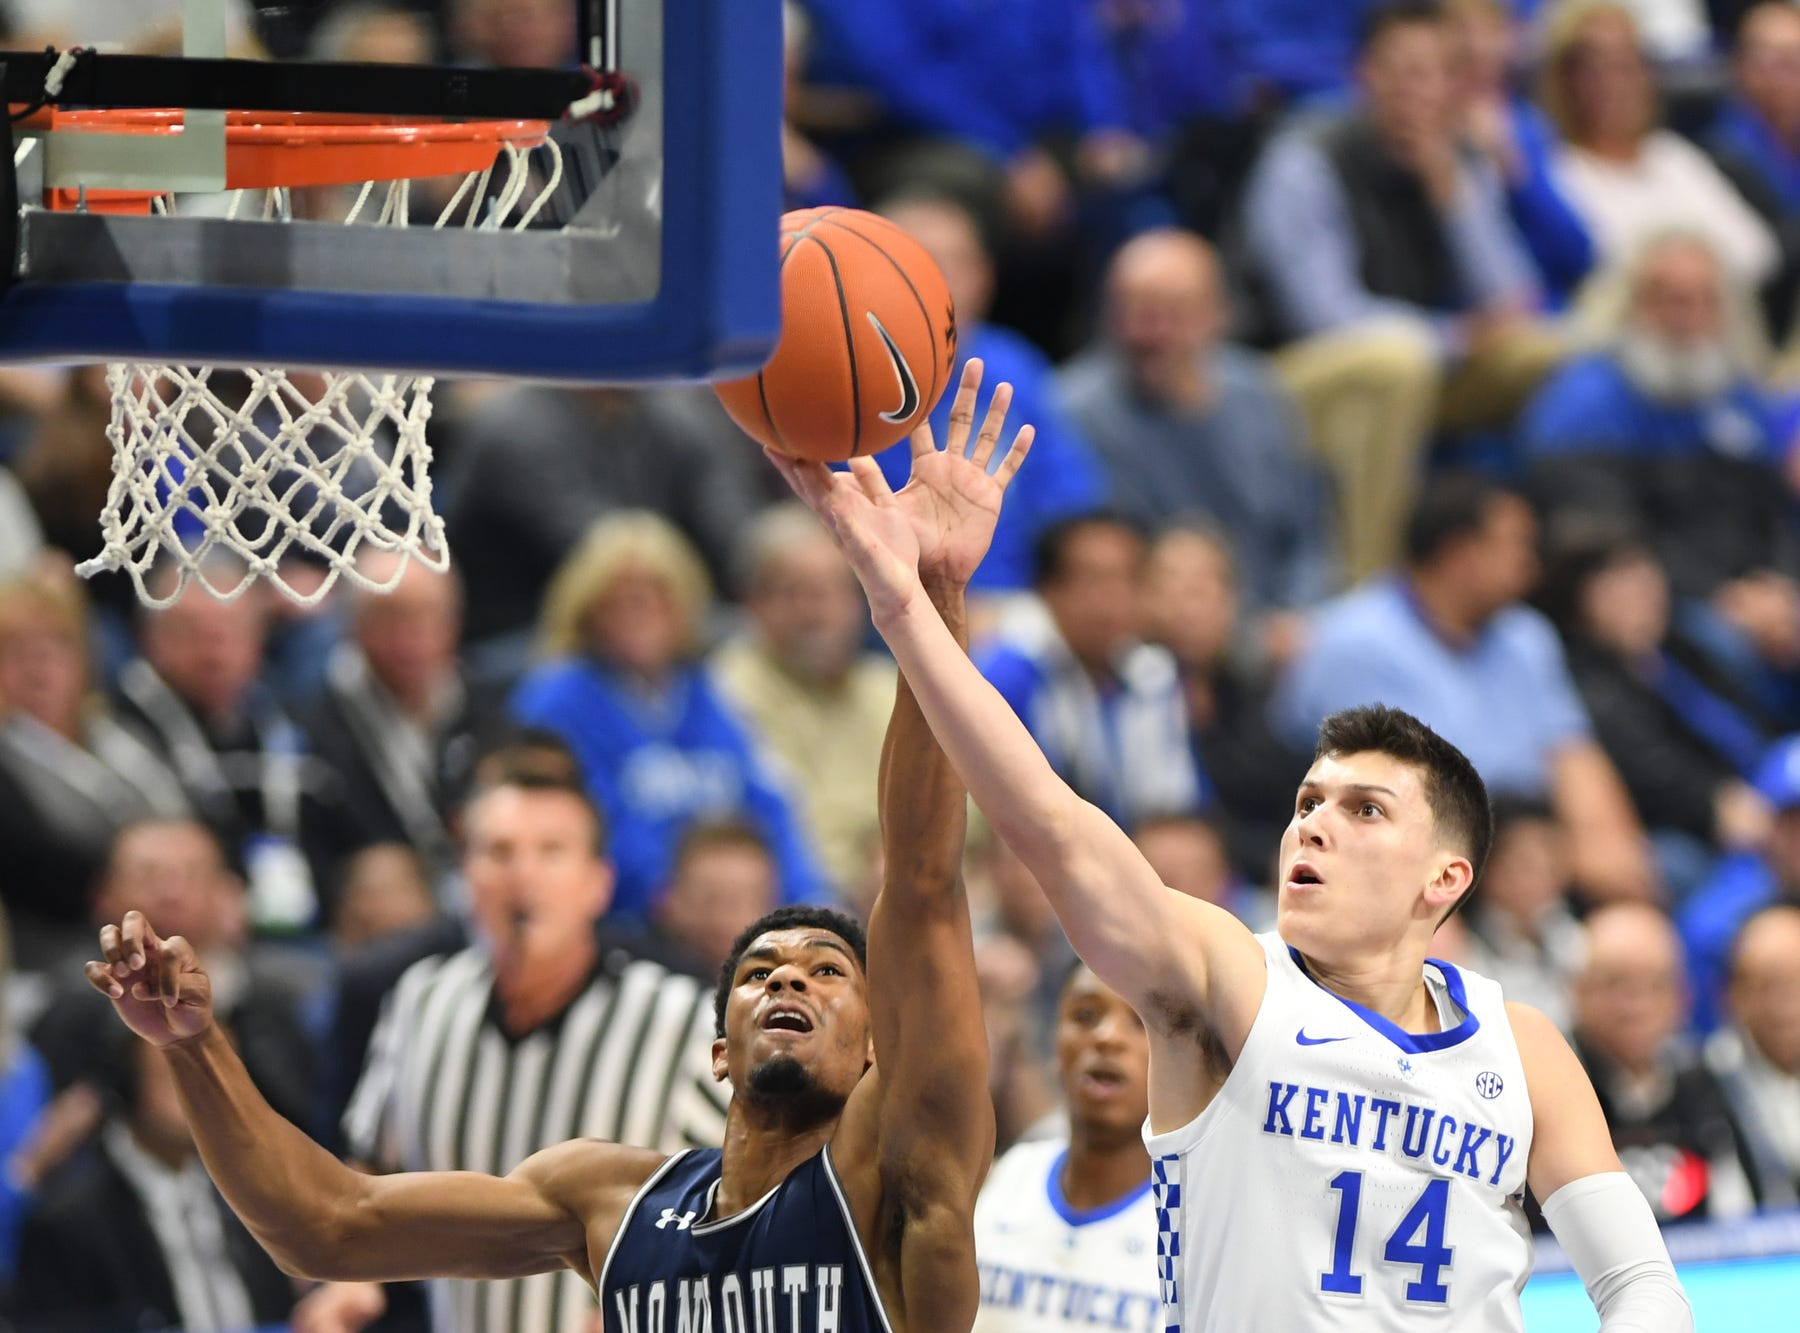 UK G Tyler Herro lays up the ball during the University of Kentucky mens basketball game against Monmouth at Rupp Arena in Lexington, Kentucky on Wednesday, November 28, 2018.